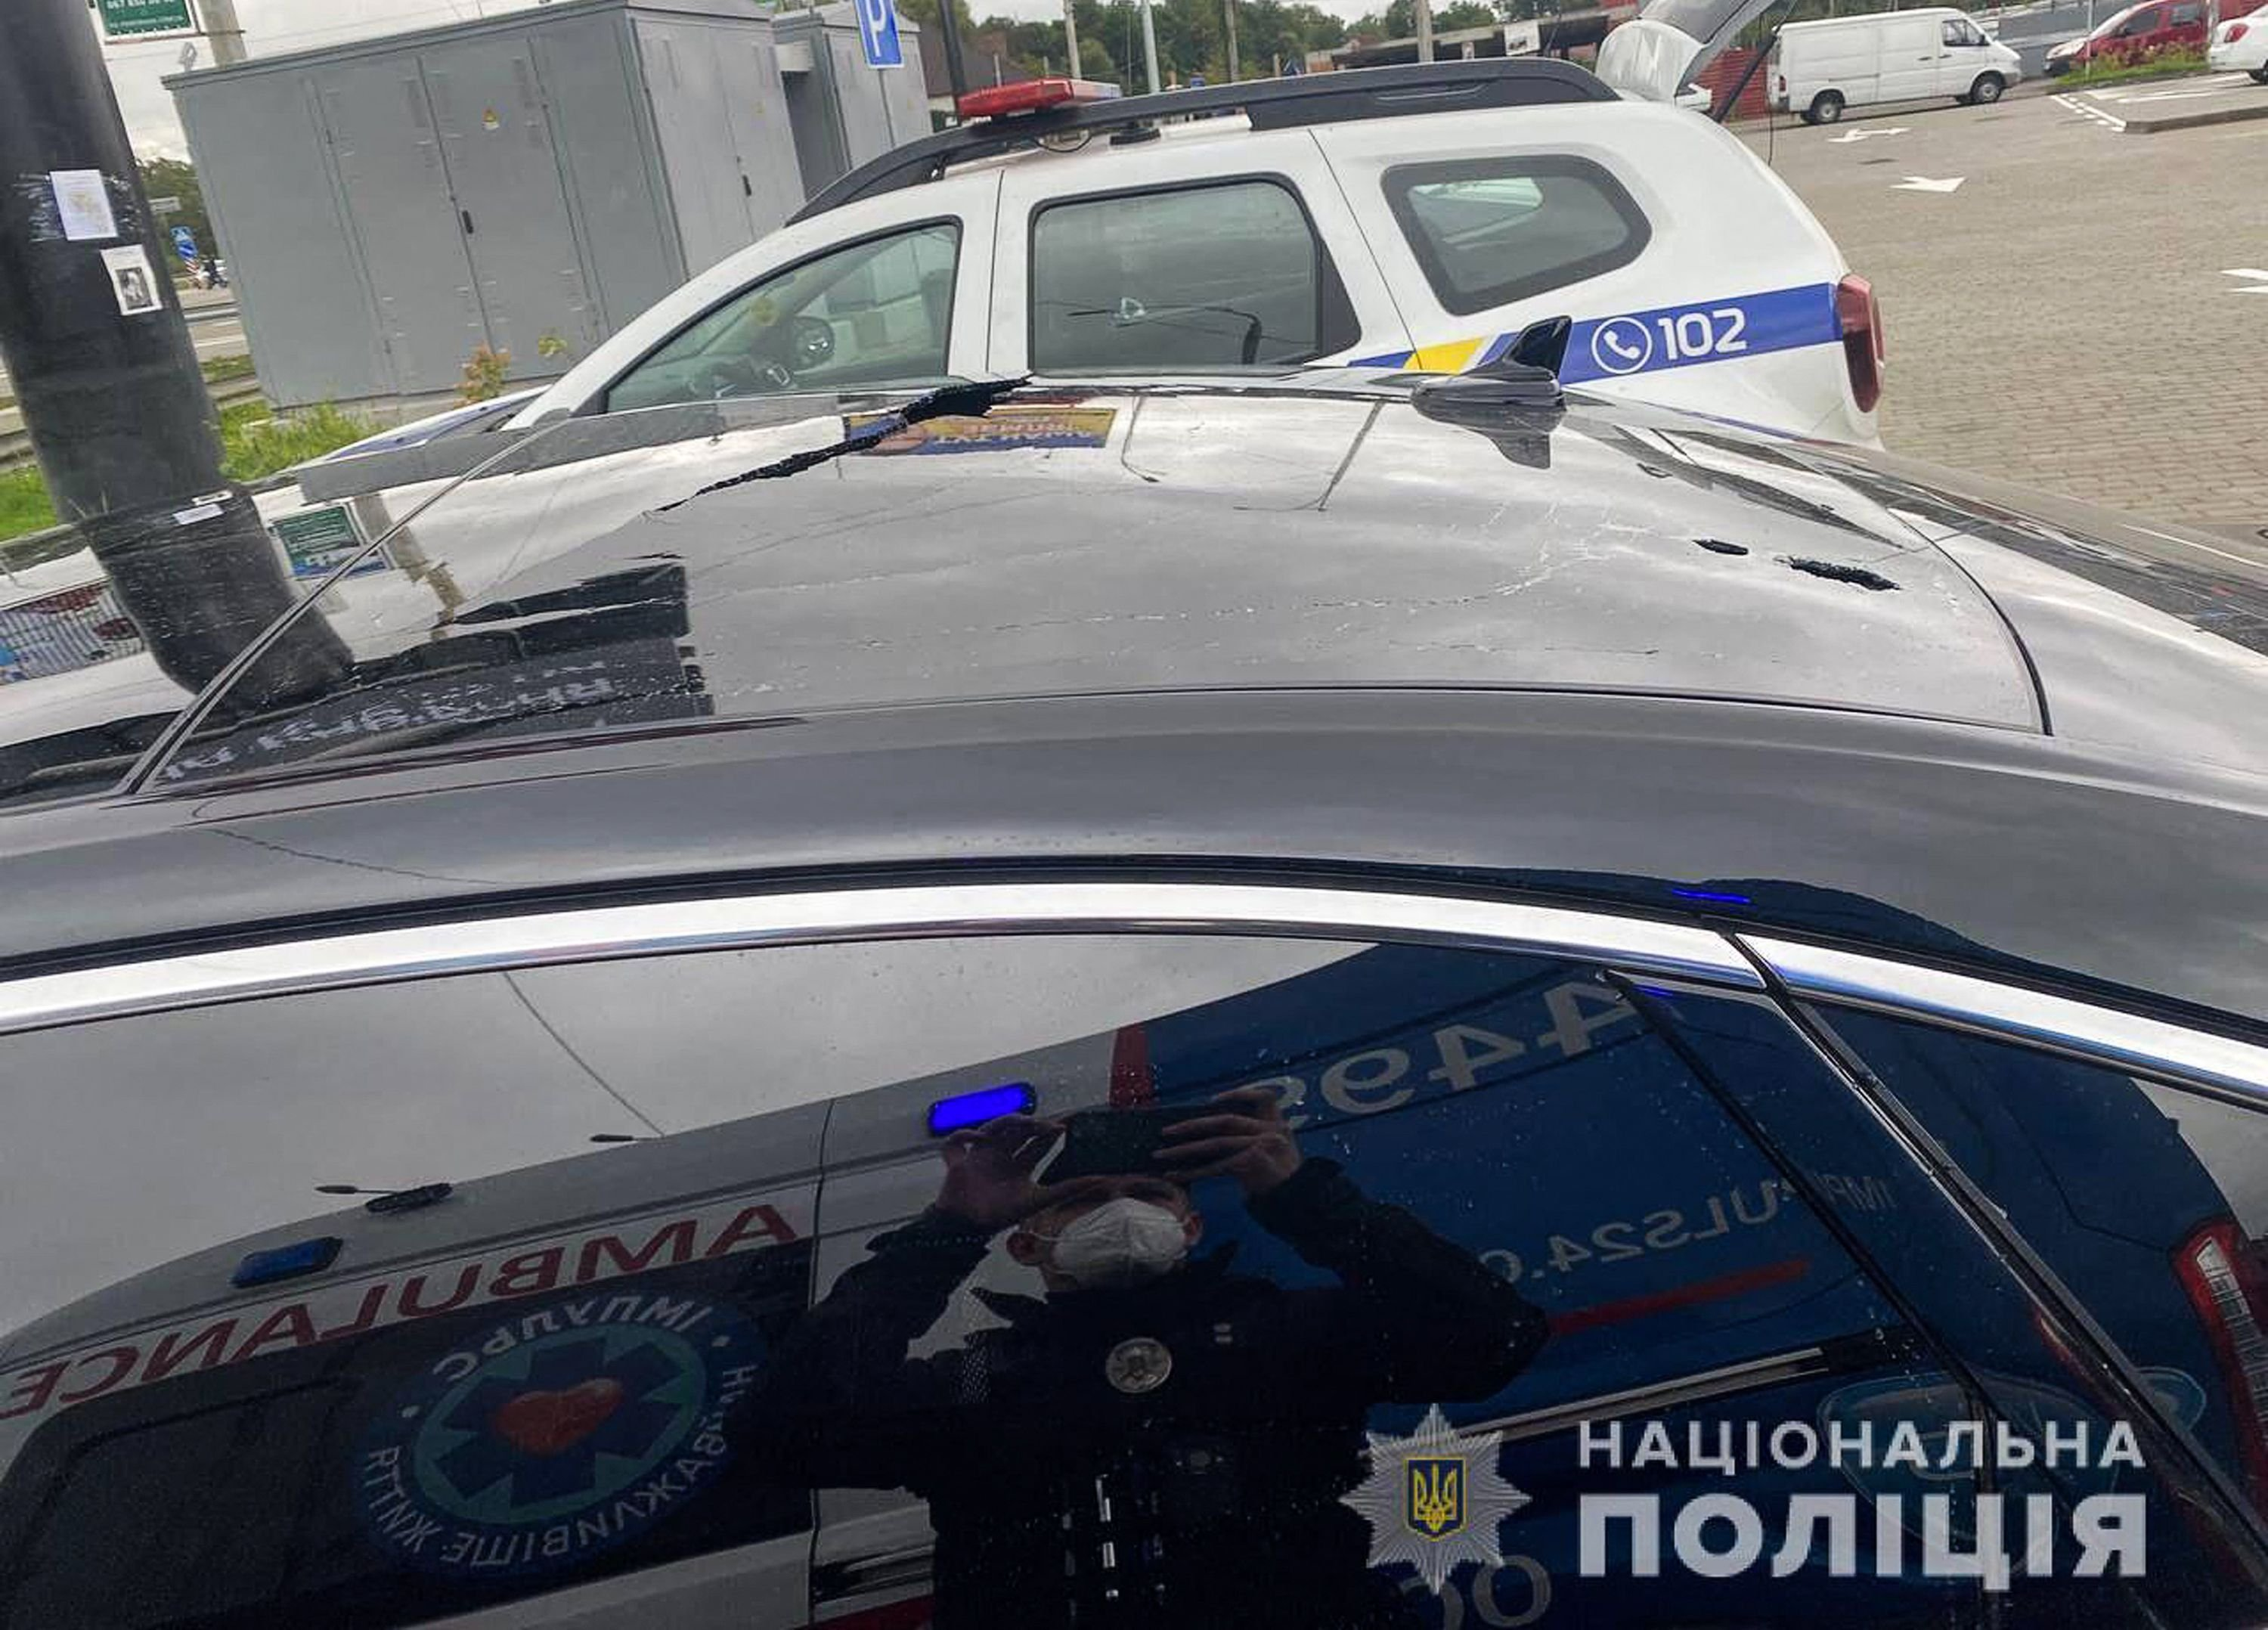 A handout photograph taken and released on Sept. 22, 2021 by the Ukrainian Interior Ministry press office shows the bullet impacts on the car of the Ukrainian president's Chief Aide Sergei Shefir, in Kyiv, Ukraine. (Ukrainian Interior Ministry Press Services via AFP)